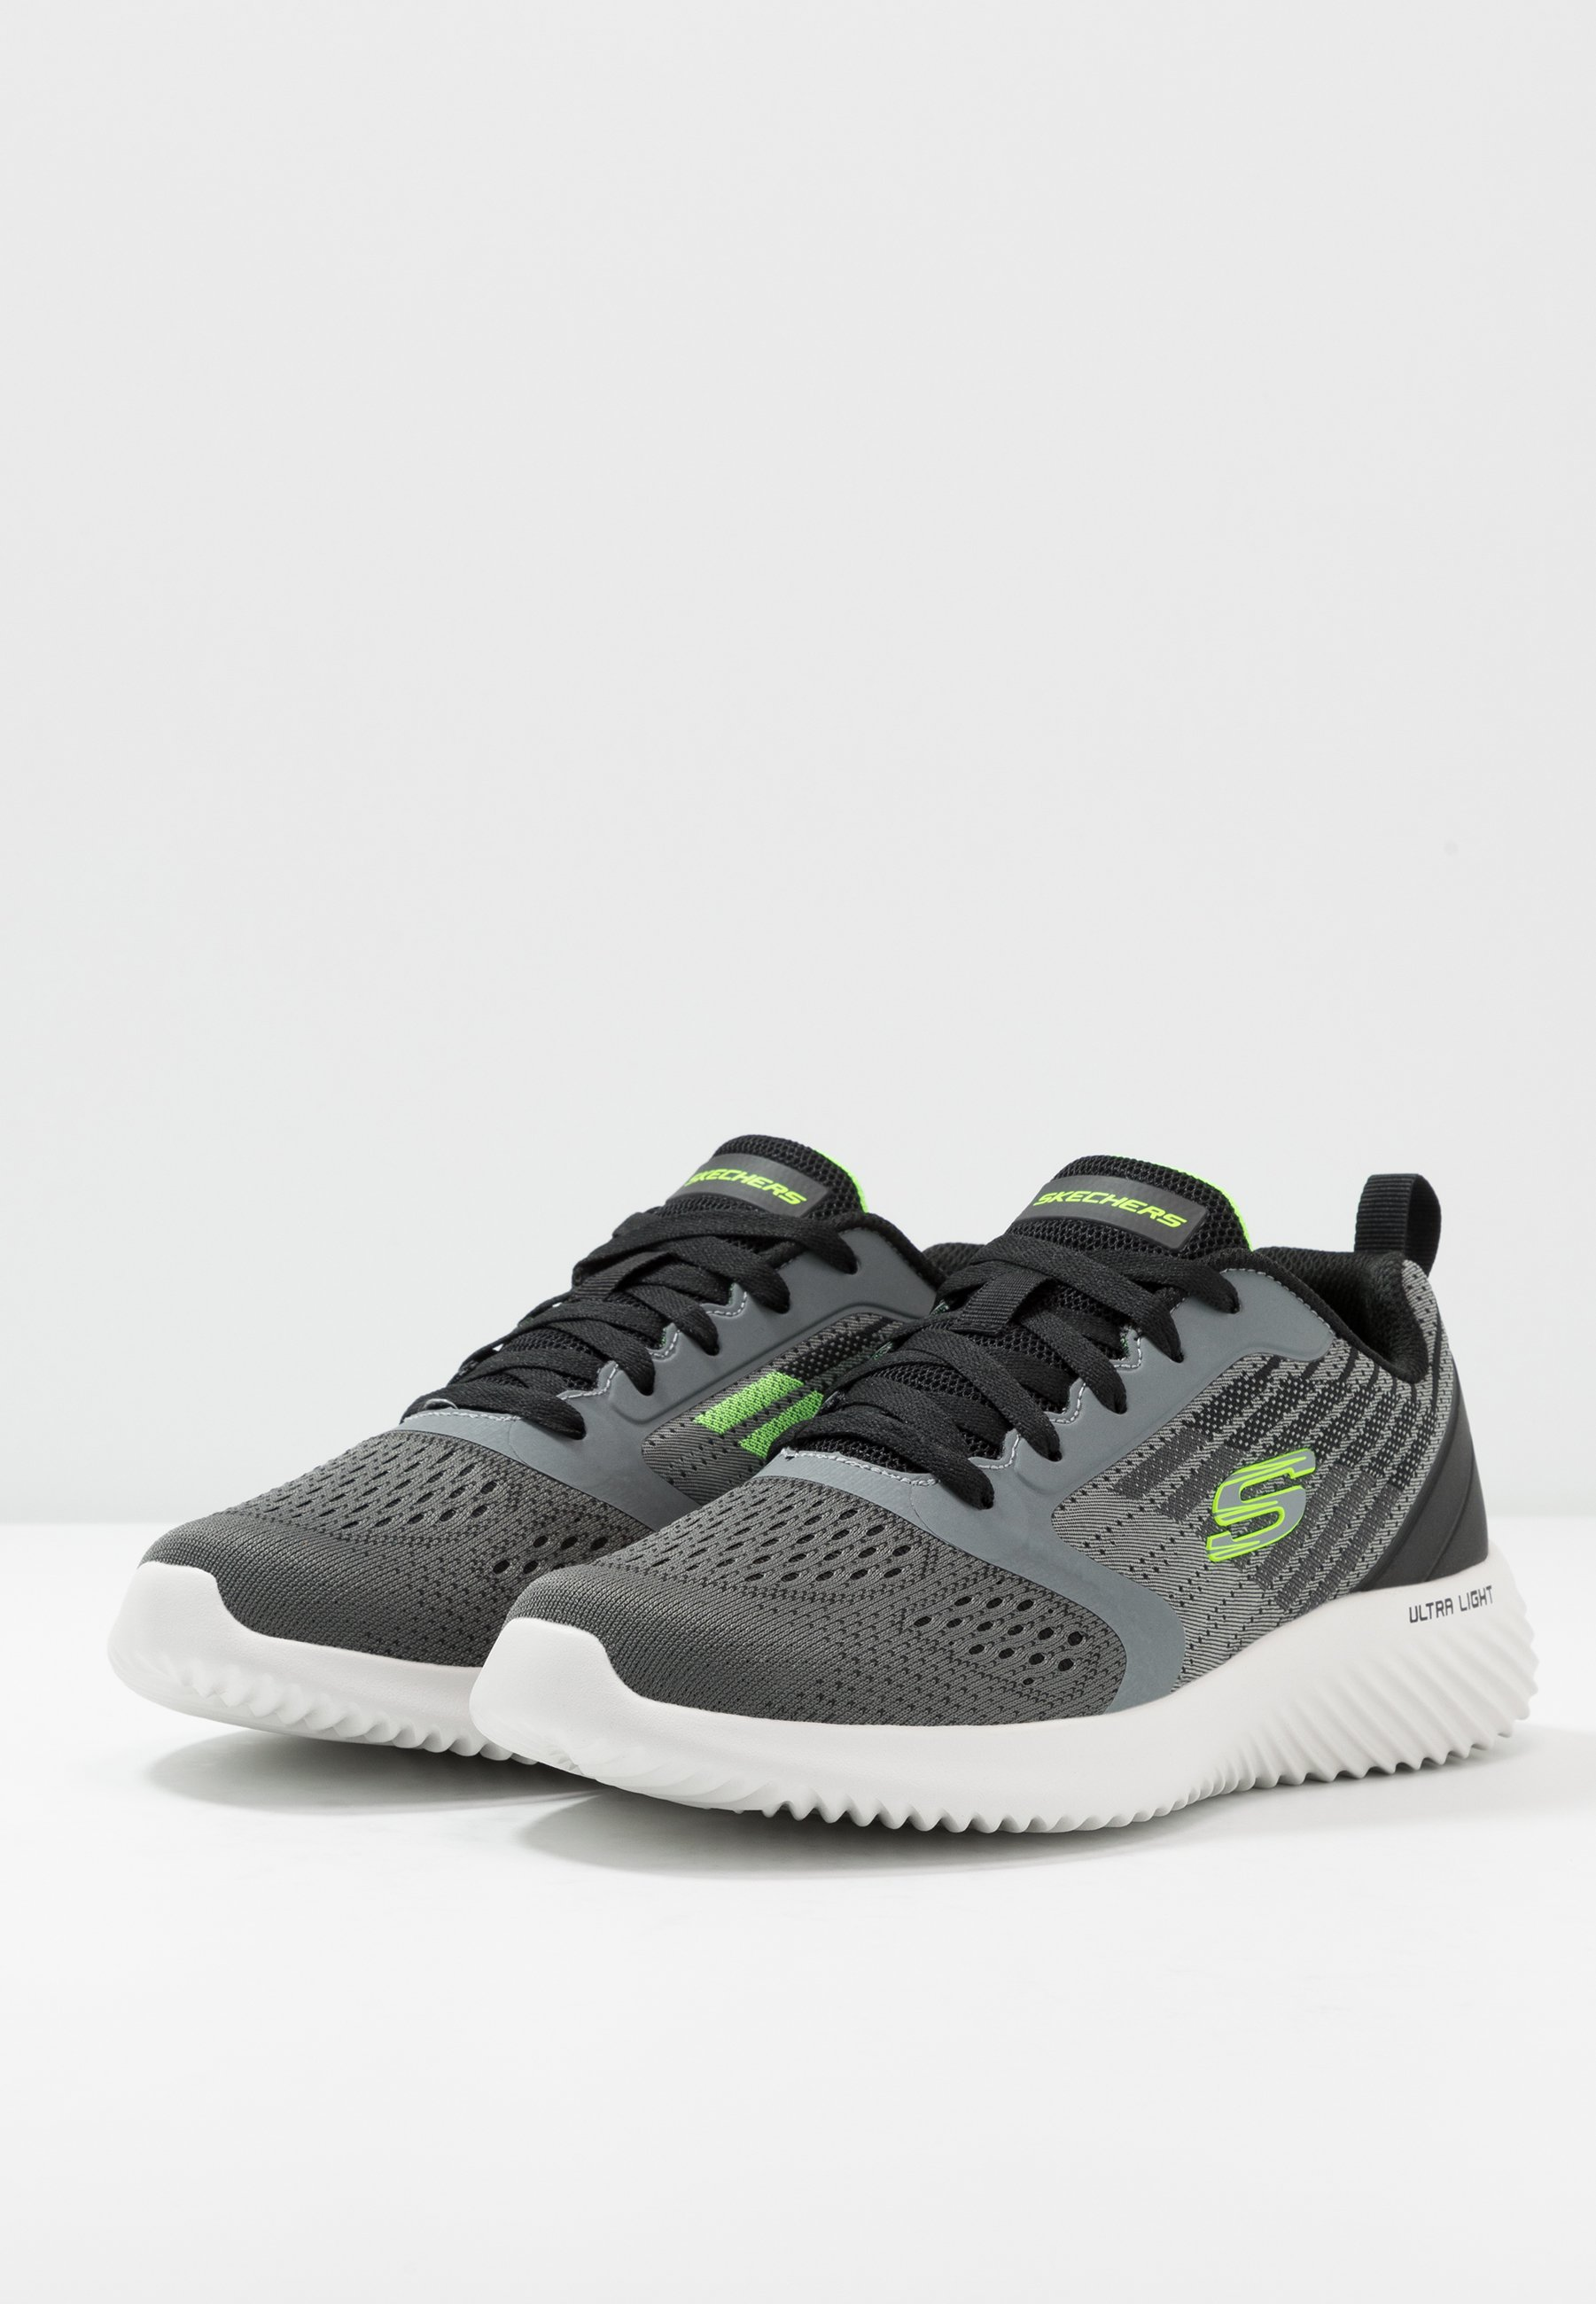 Skechers Sport Bounder - Sneakers Charcoal/gray